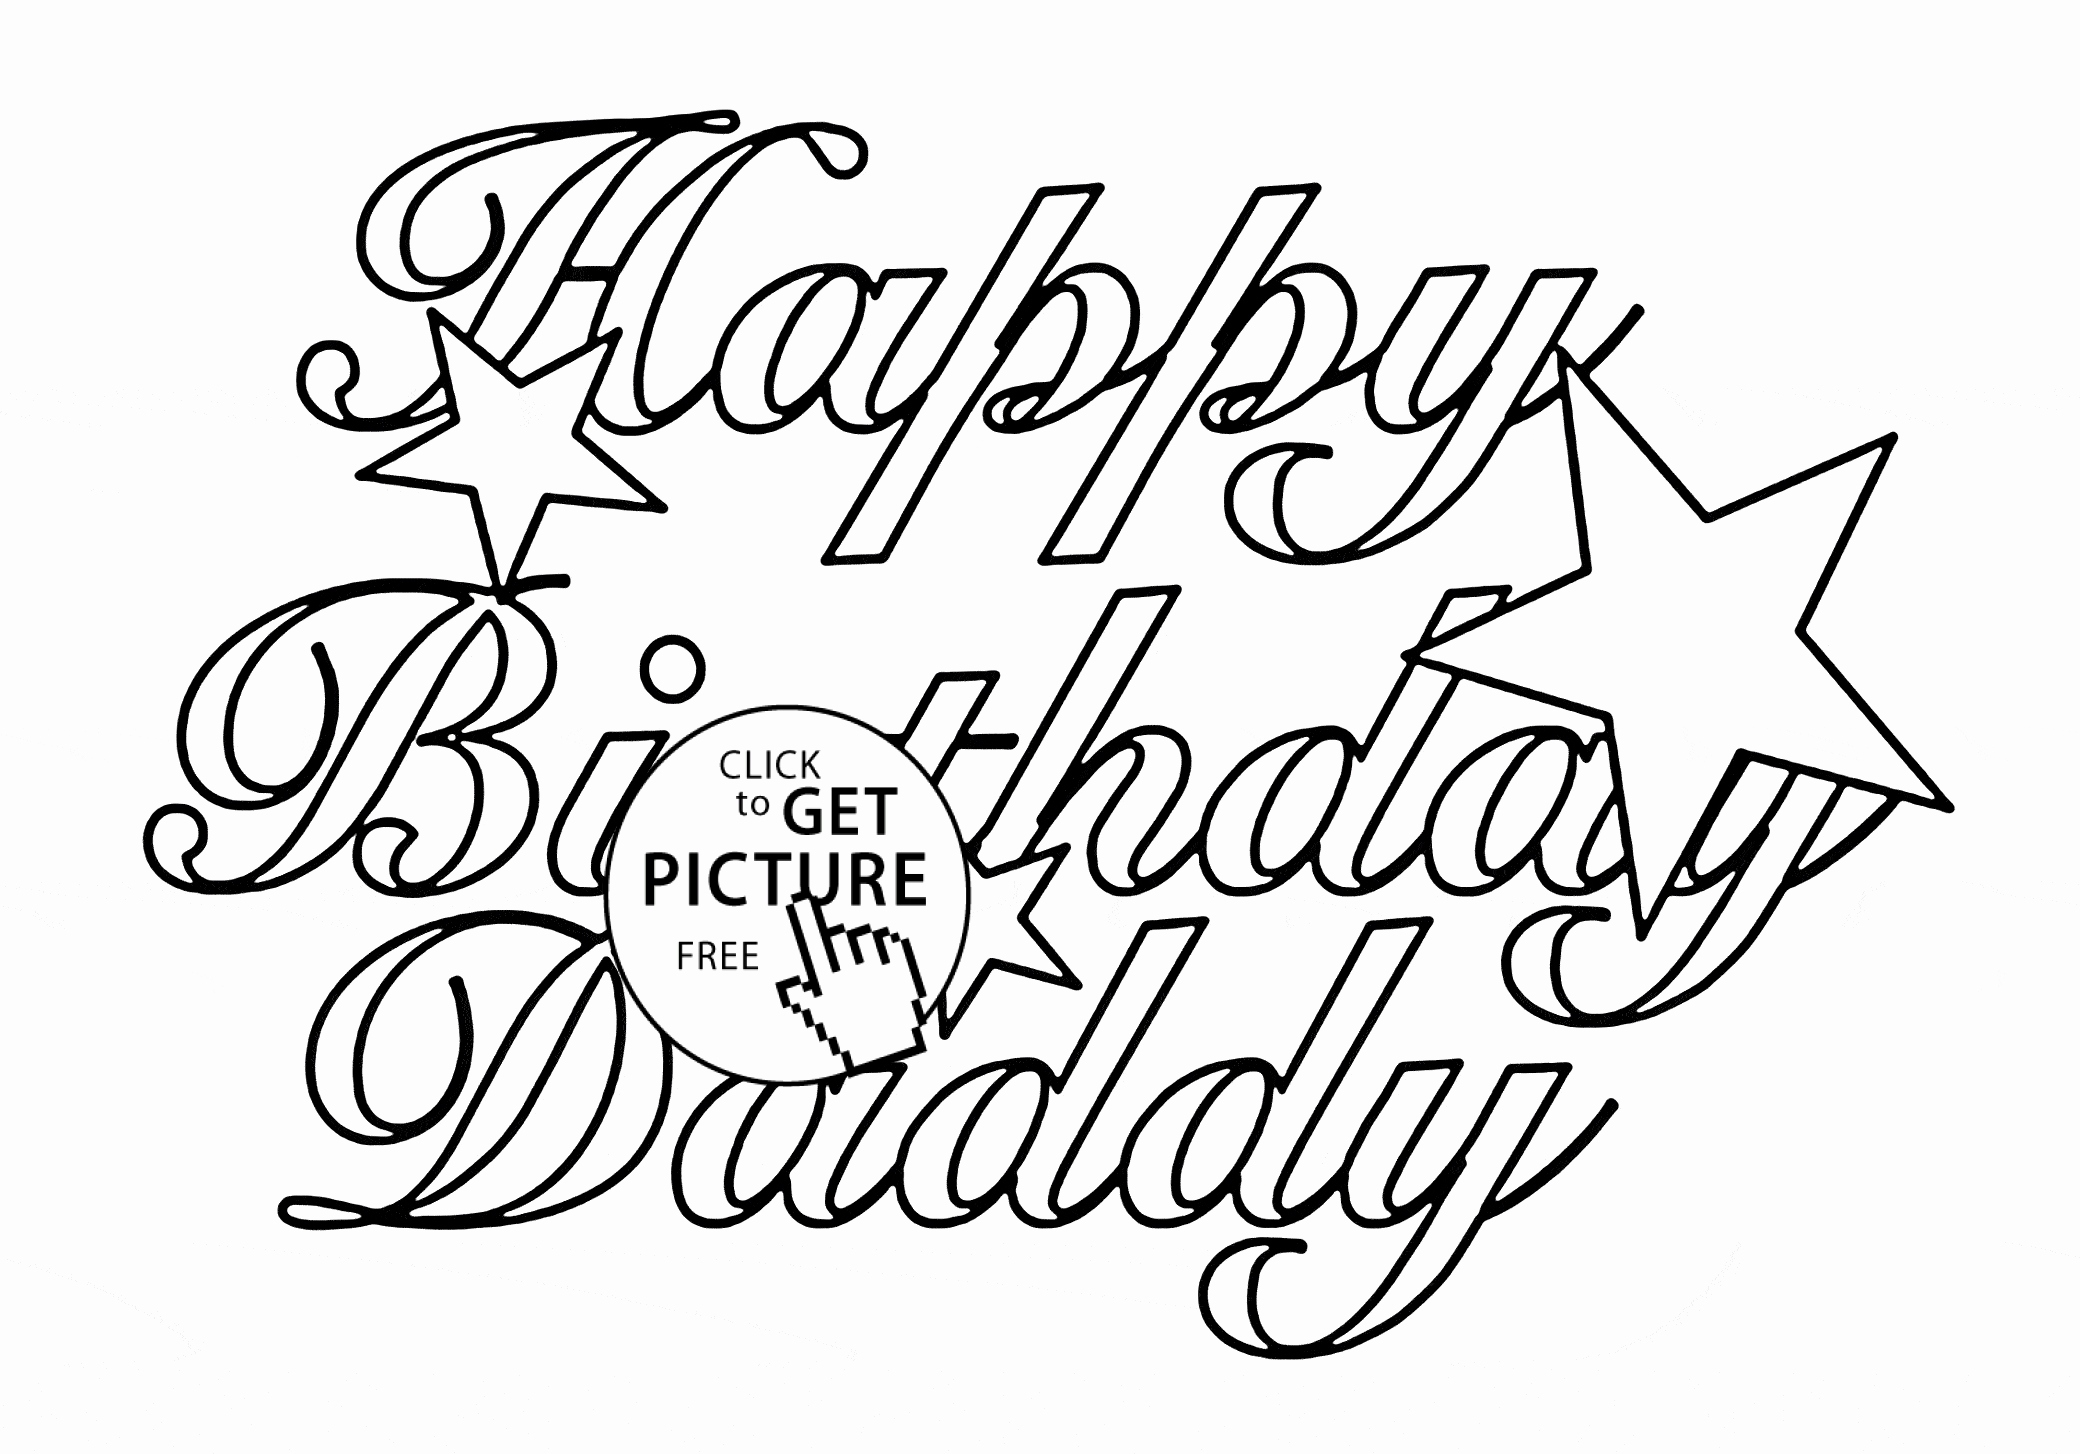 happy birthday daddy cards printable to color ; happy-birthday-dad-cards-printable-lovely-happy-birthday-coloring-cards-beautiful-free-printable-happy-of-happy-birthday-dad-cards-printable